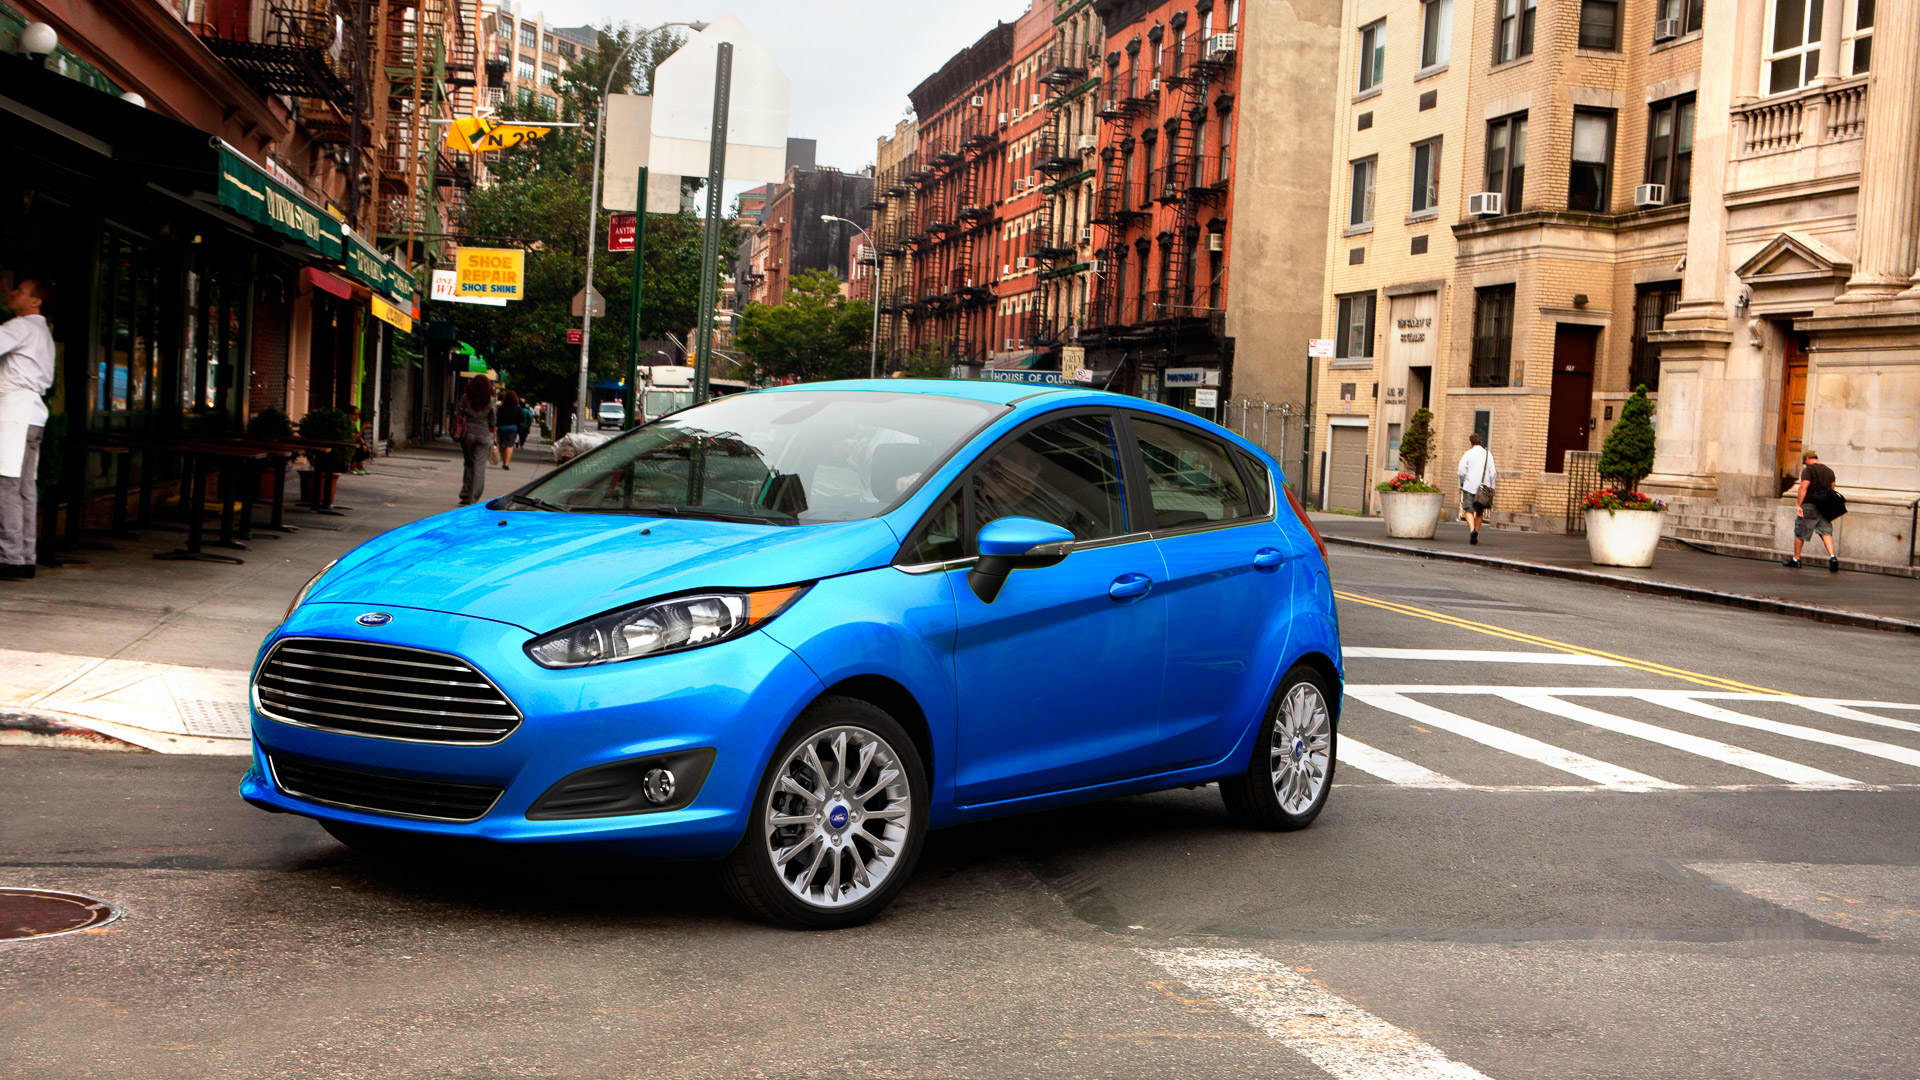 10 new cars you can buy for under $300 a month